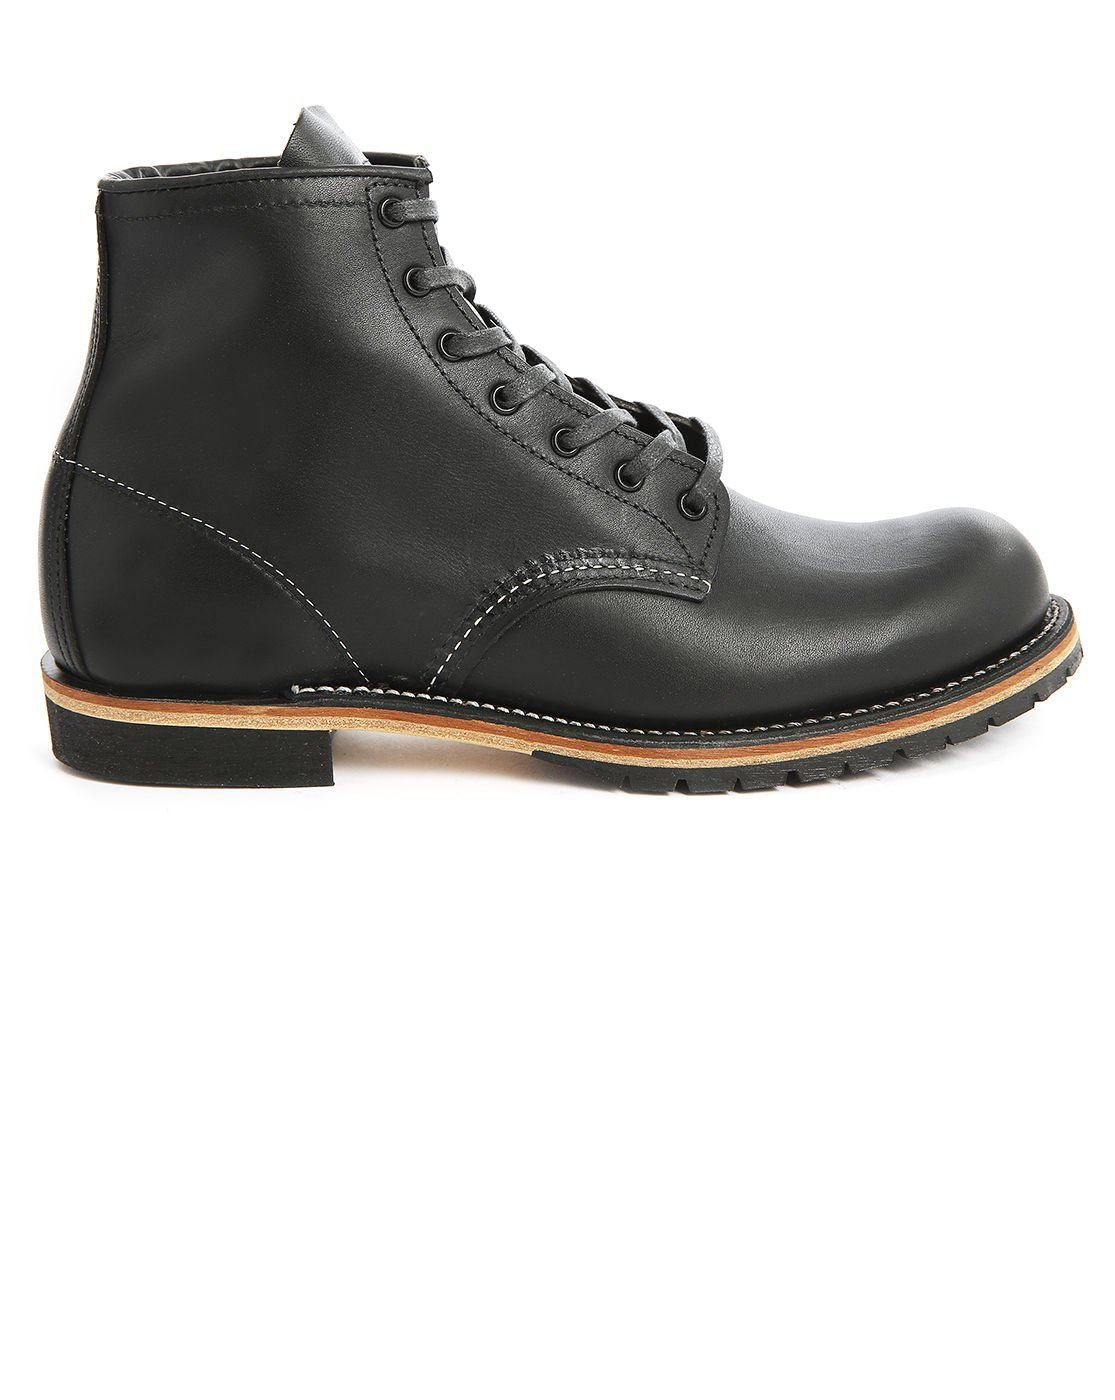 Are All Red Wing Shoes Made In Usa